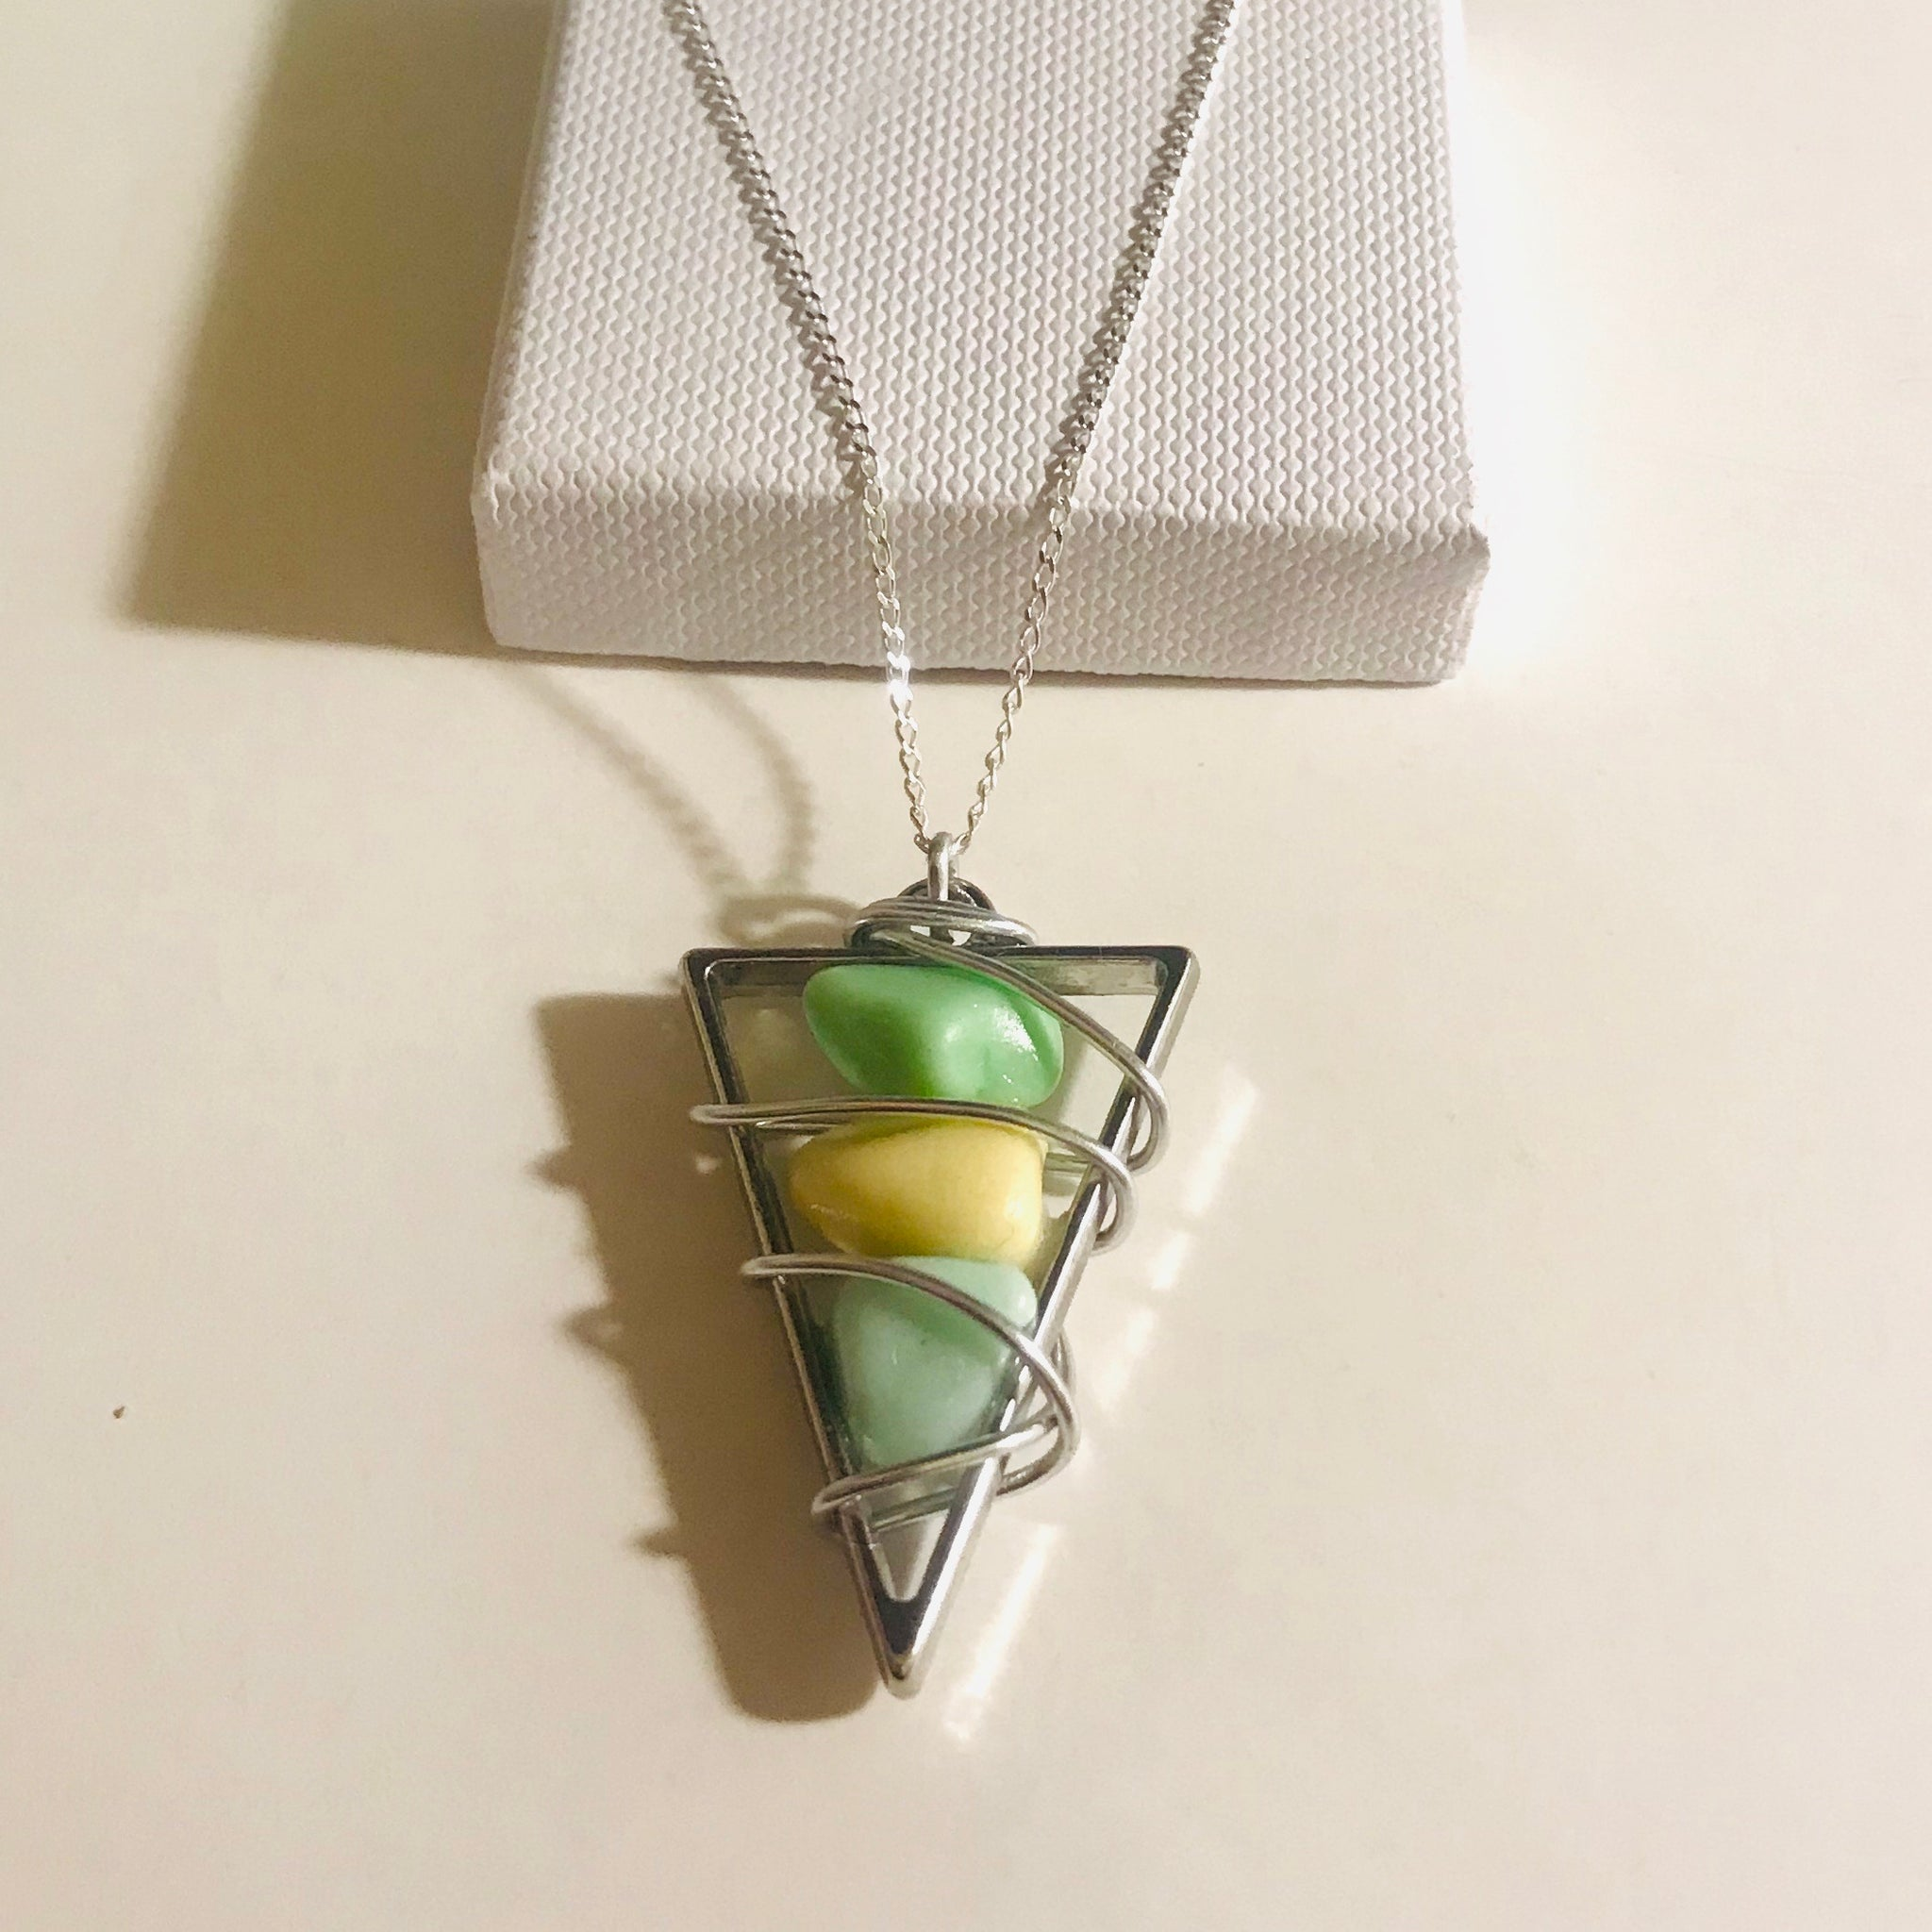 "Seaham Milk Glass Bead Frame Pendant on a 20"" Sterling silver Chain"